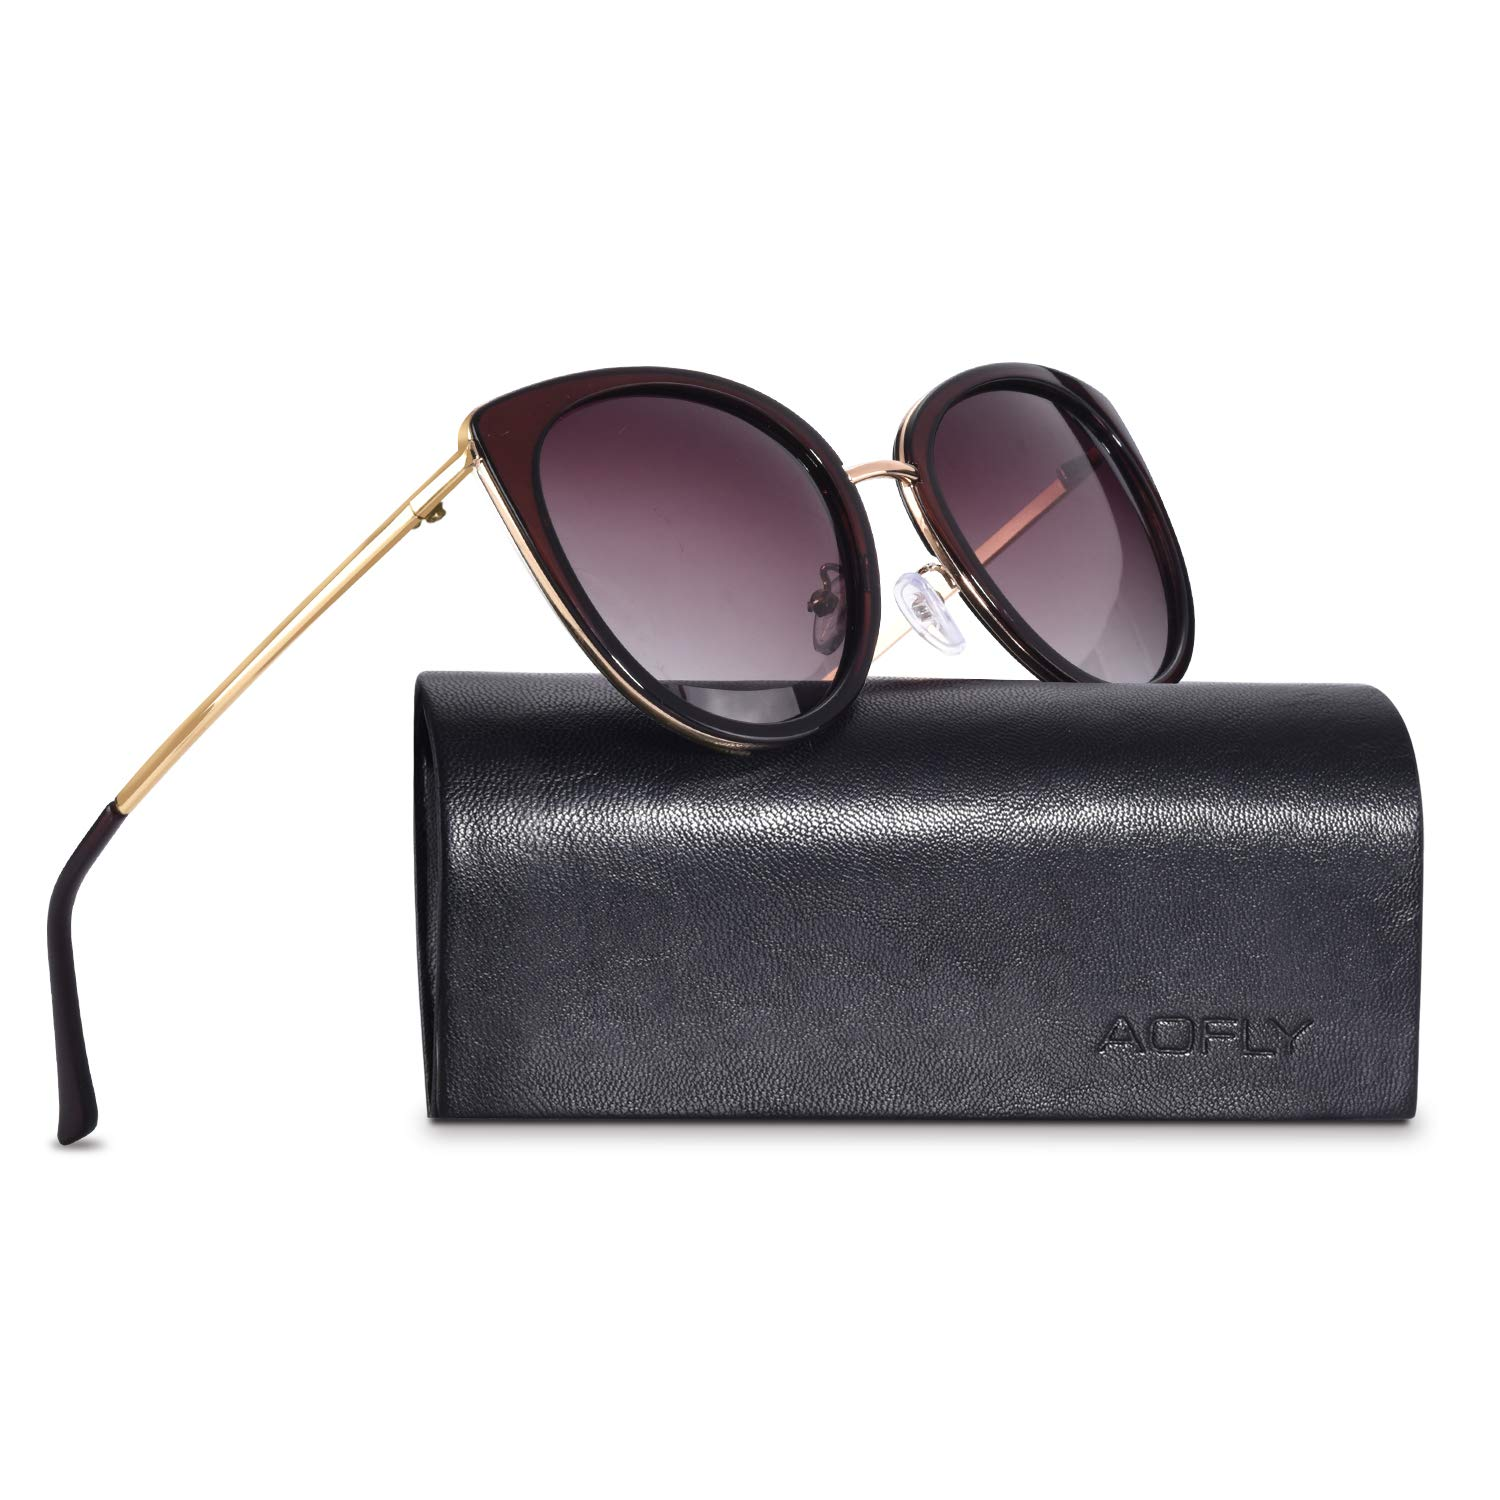 AOFLY Vintage Driving Polarised Sunglasses UV400 Protection Lenses For Women